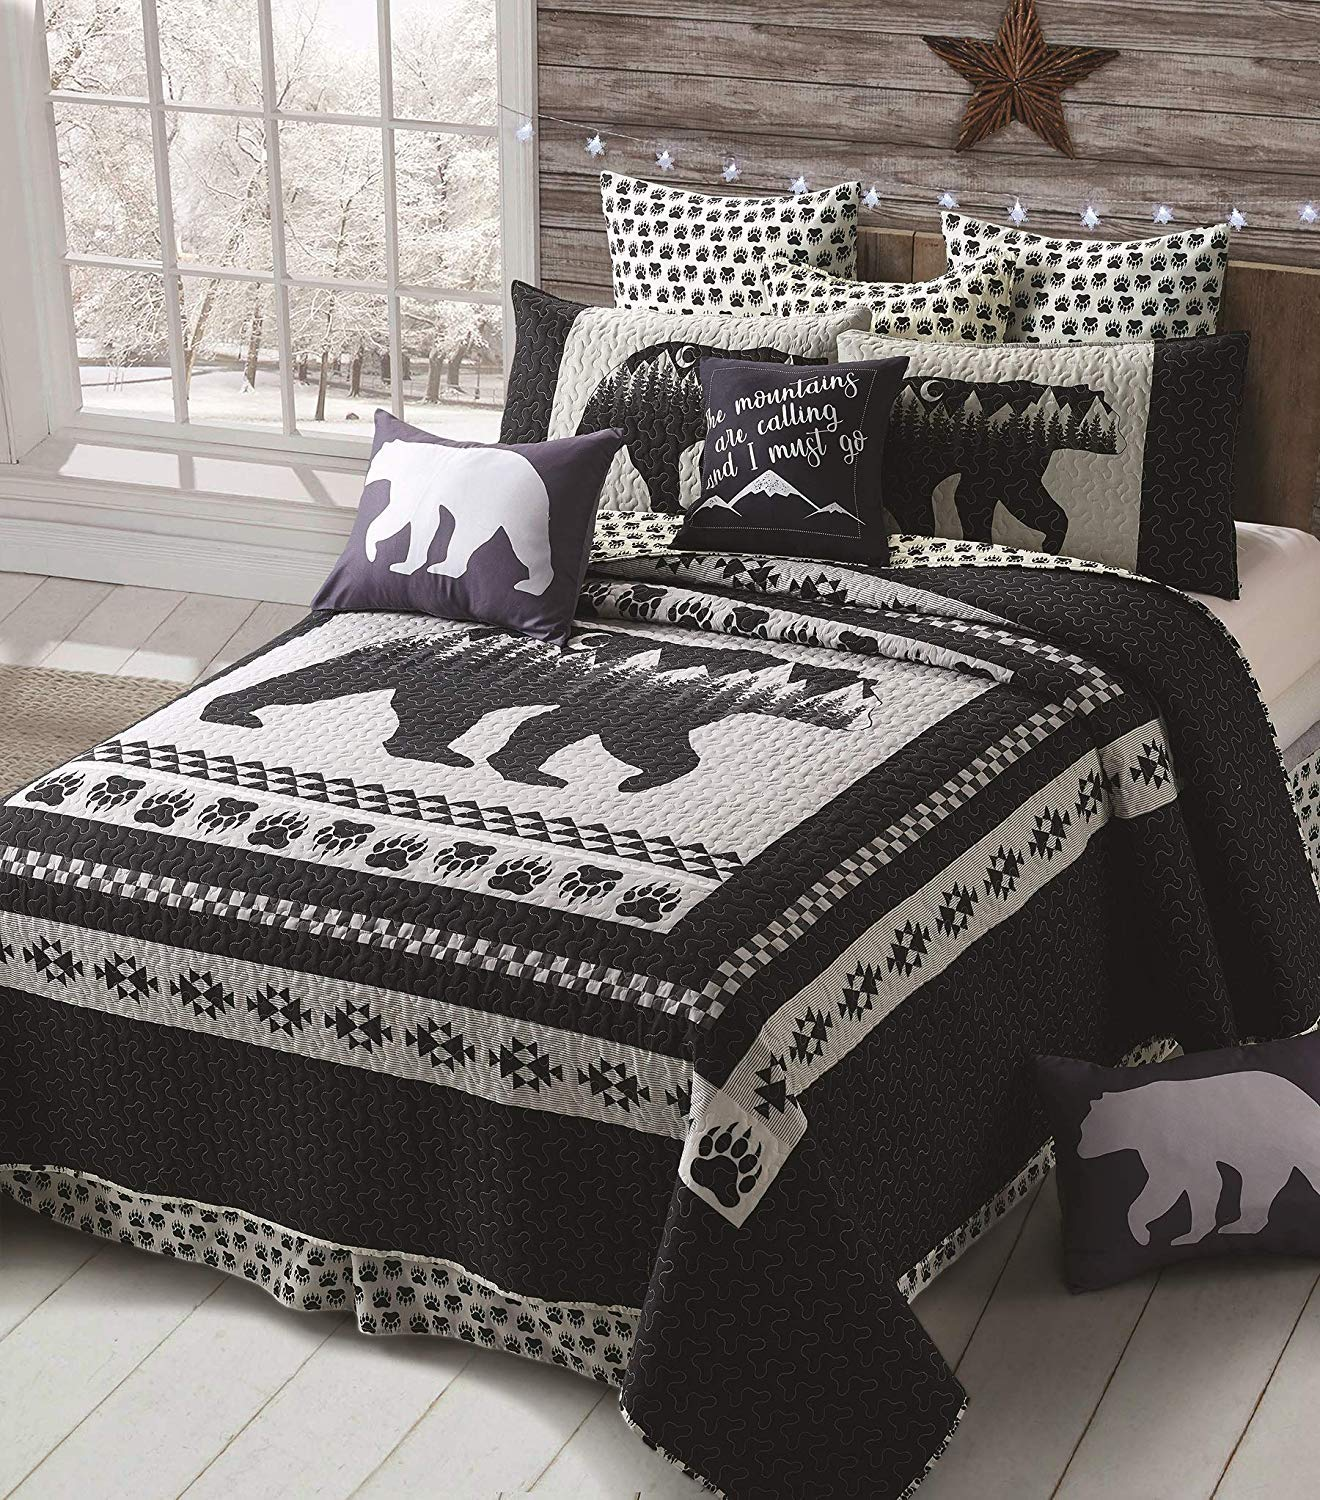 Virah Bella 3 Piece Moon Bear Quilt Set - Mountain Cabin Southwestern (Black, Queen/Full)